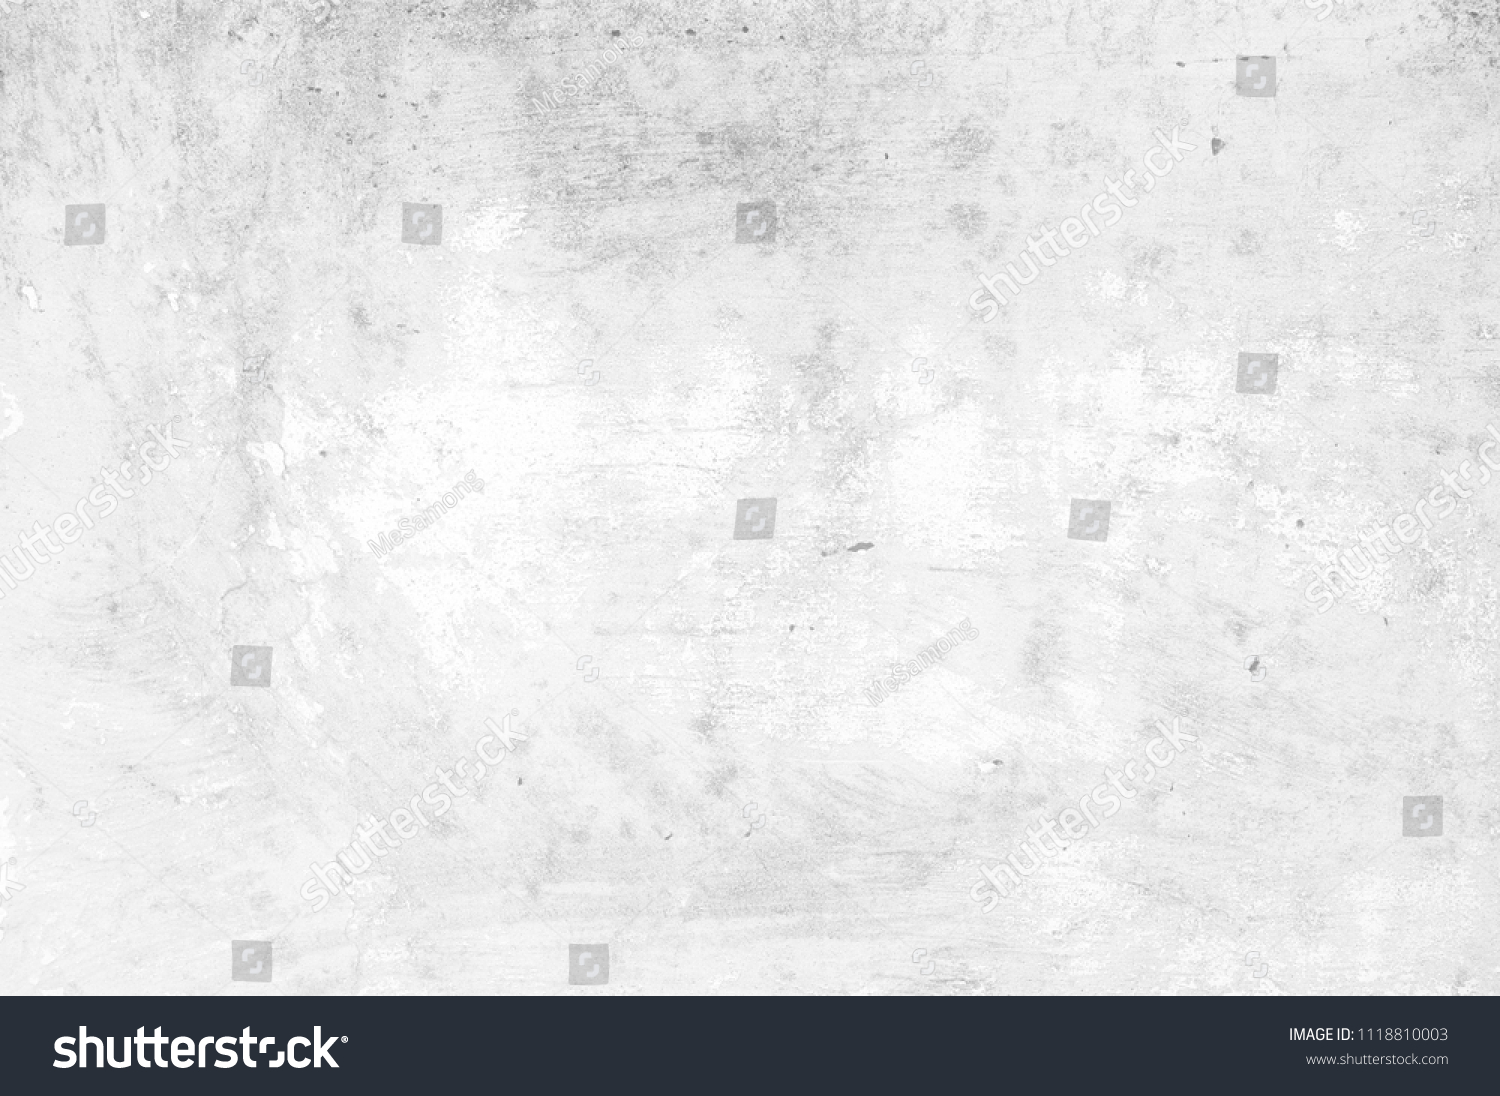 White Grunge Concrete Wall Texture Background. #1118810003